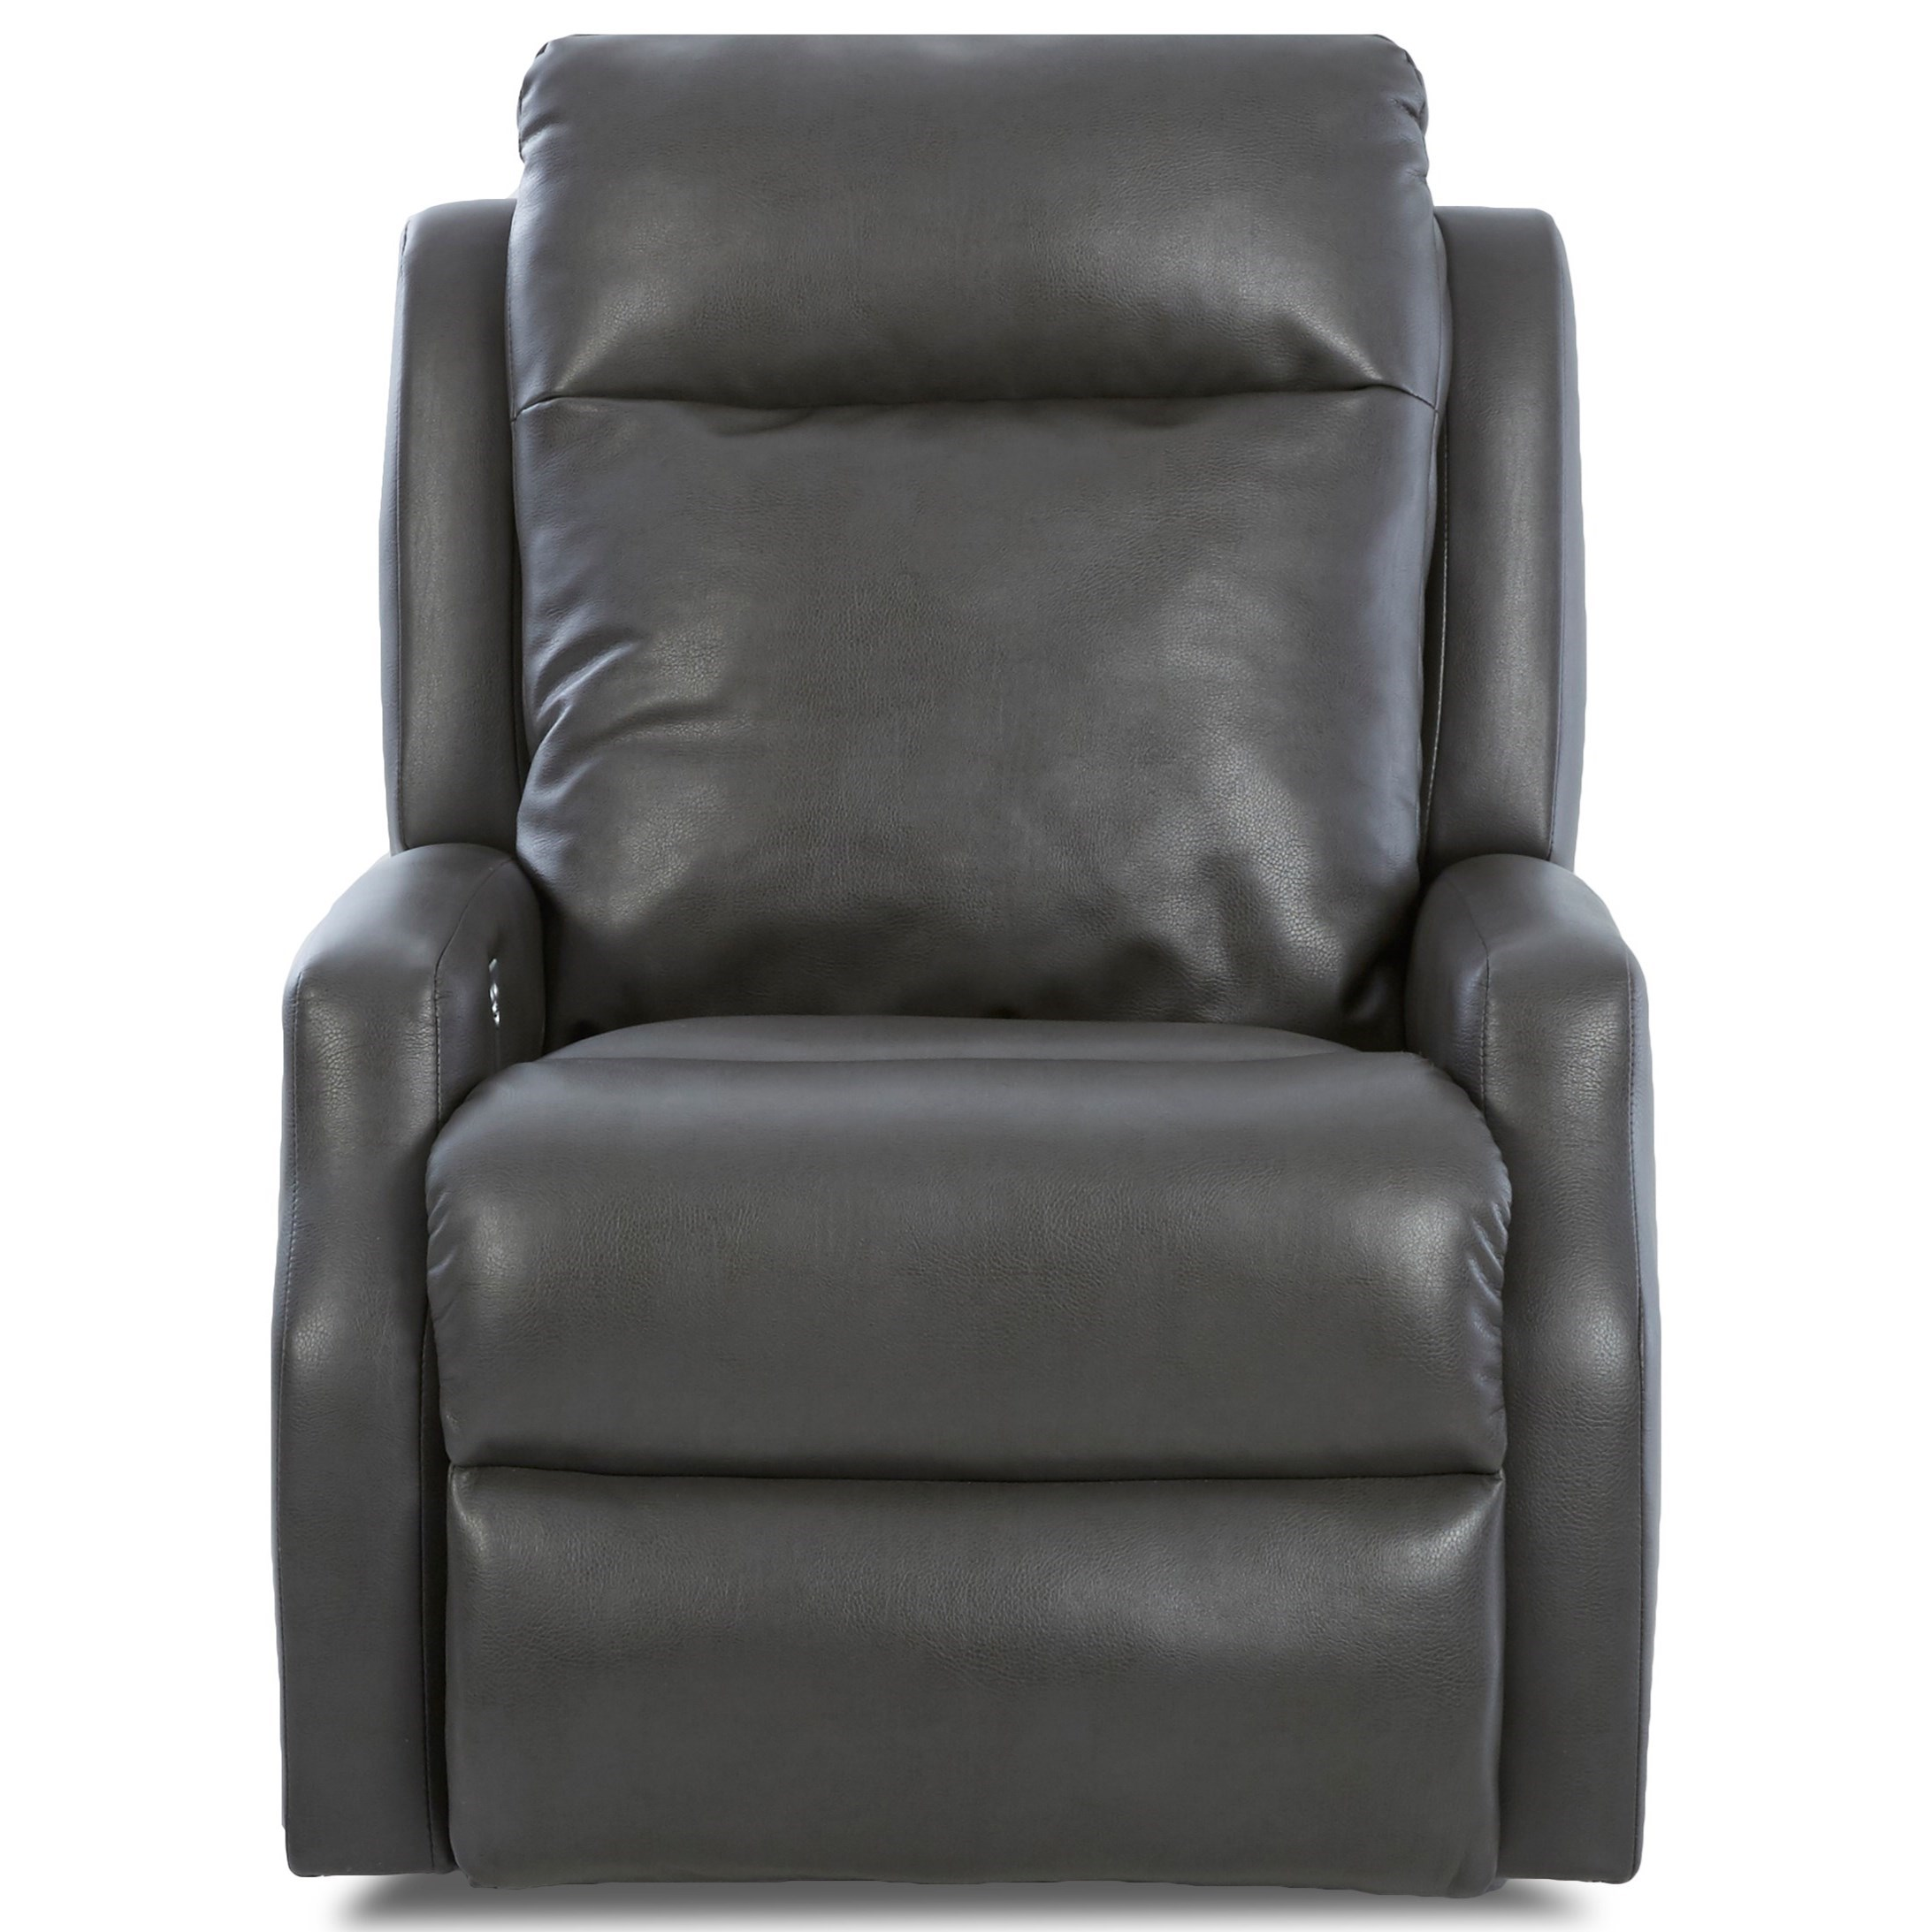 Contemporary Power Reclining Chair with Power Headrest and USB Charging Port